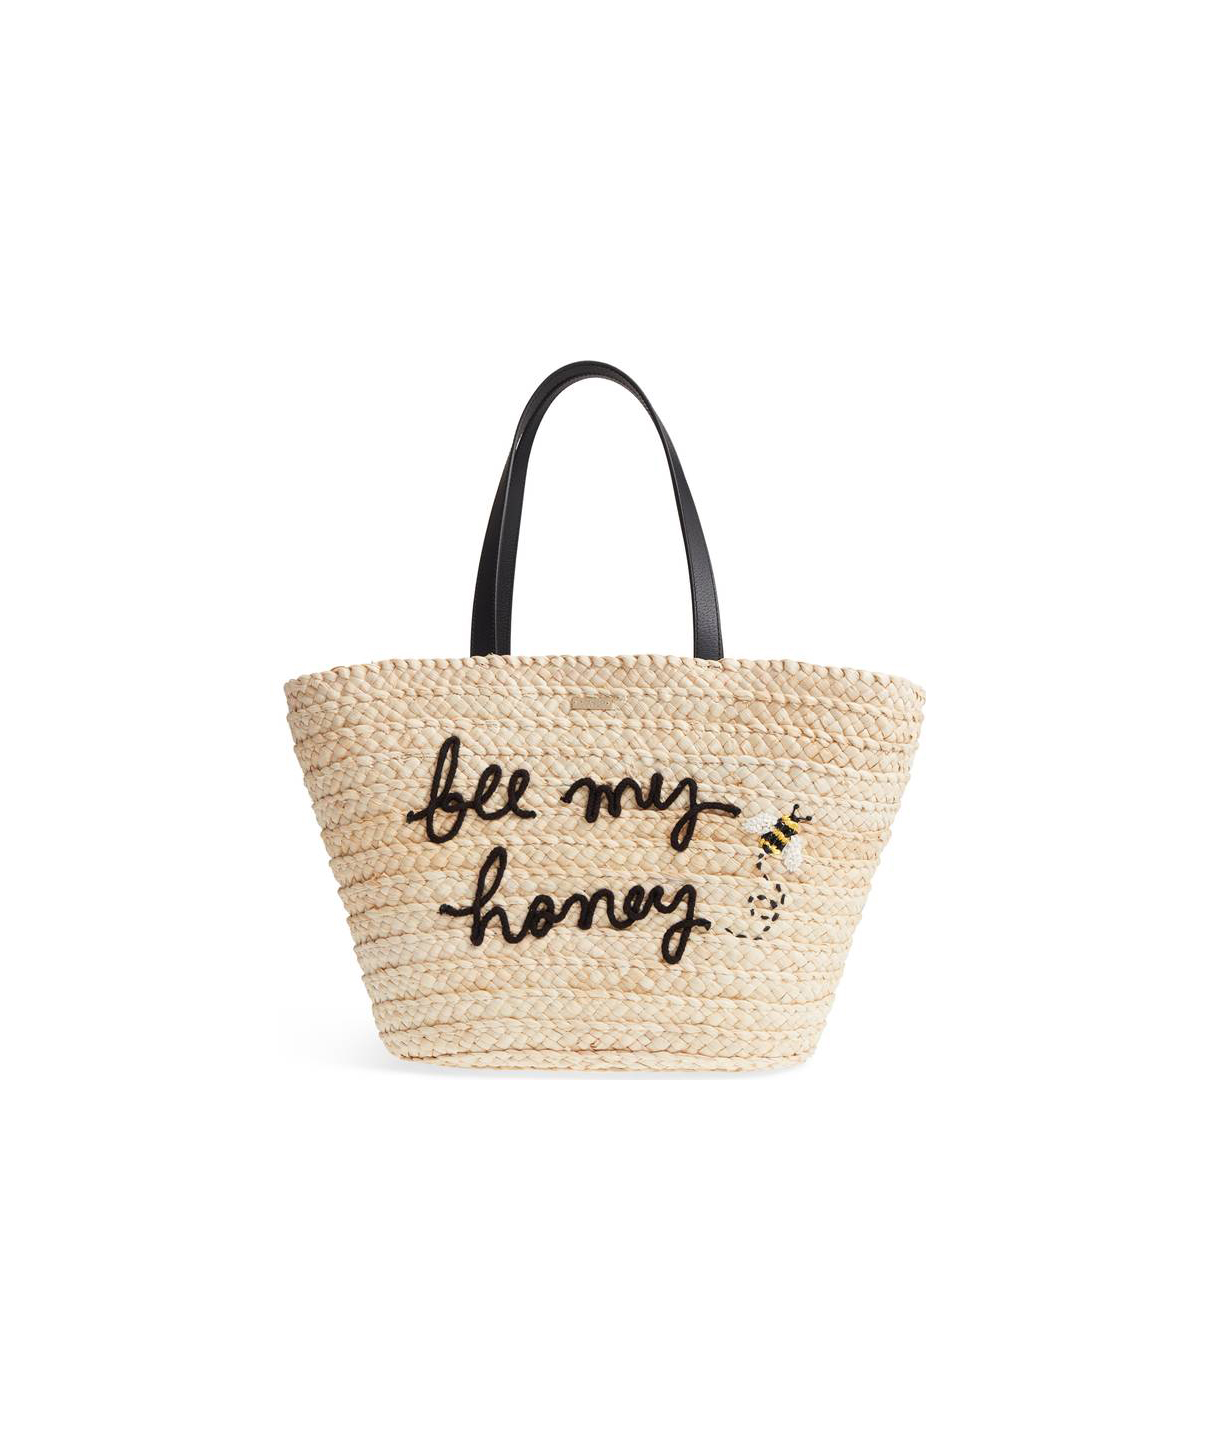 Kate Spade Picnic Perfect Bee My Honey Straw Tote